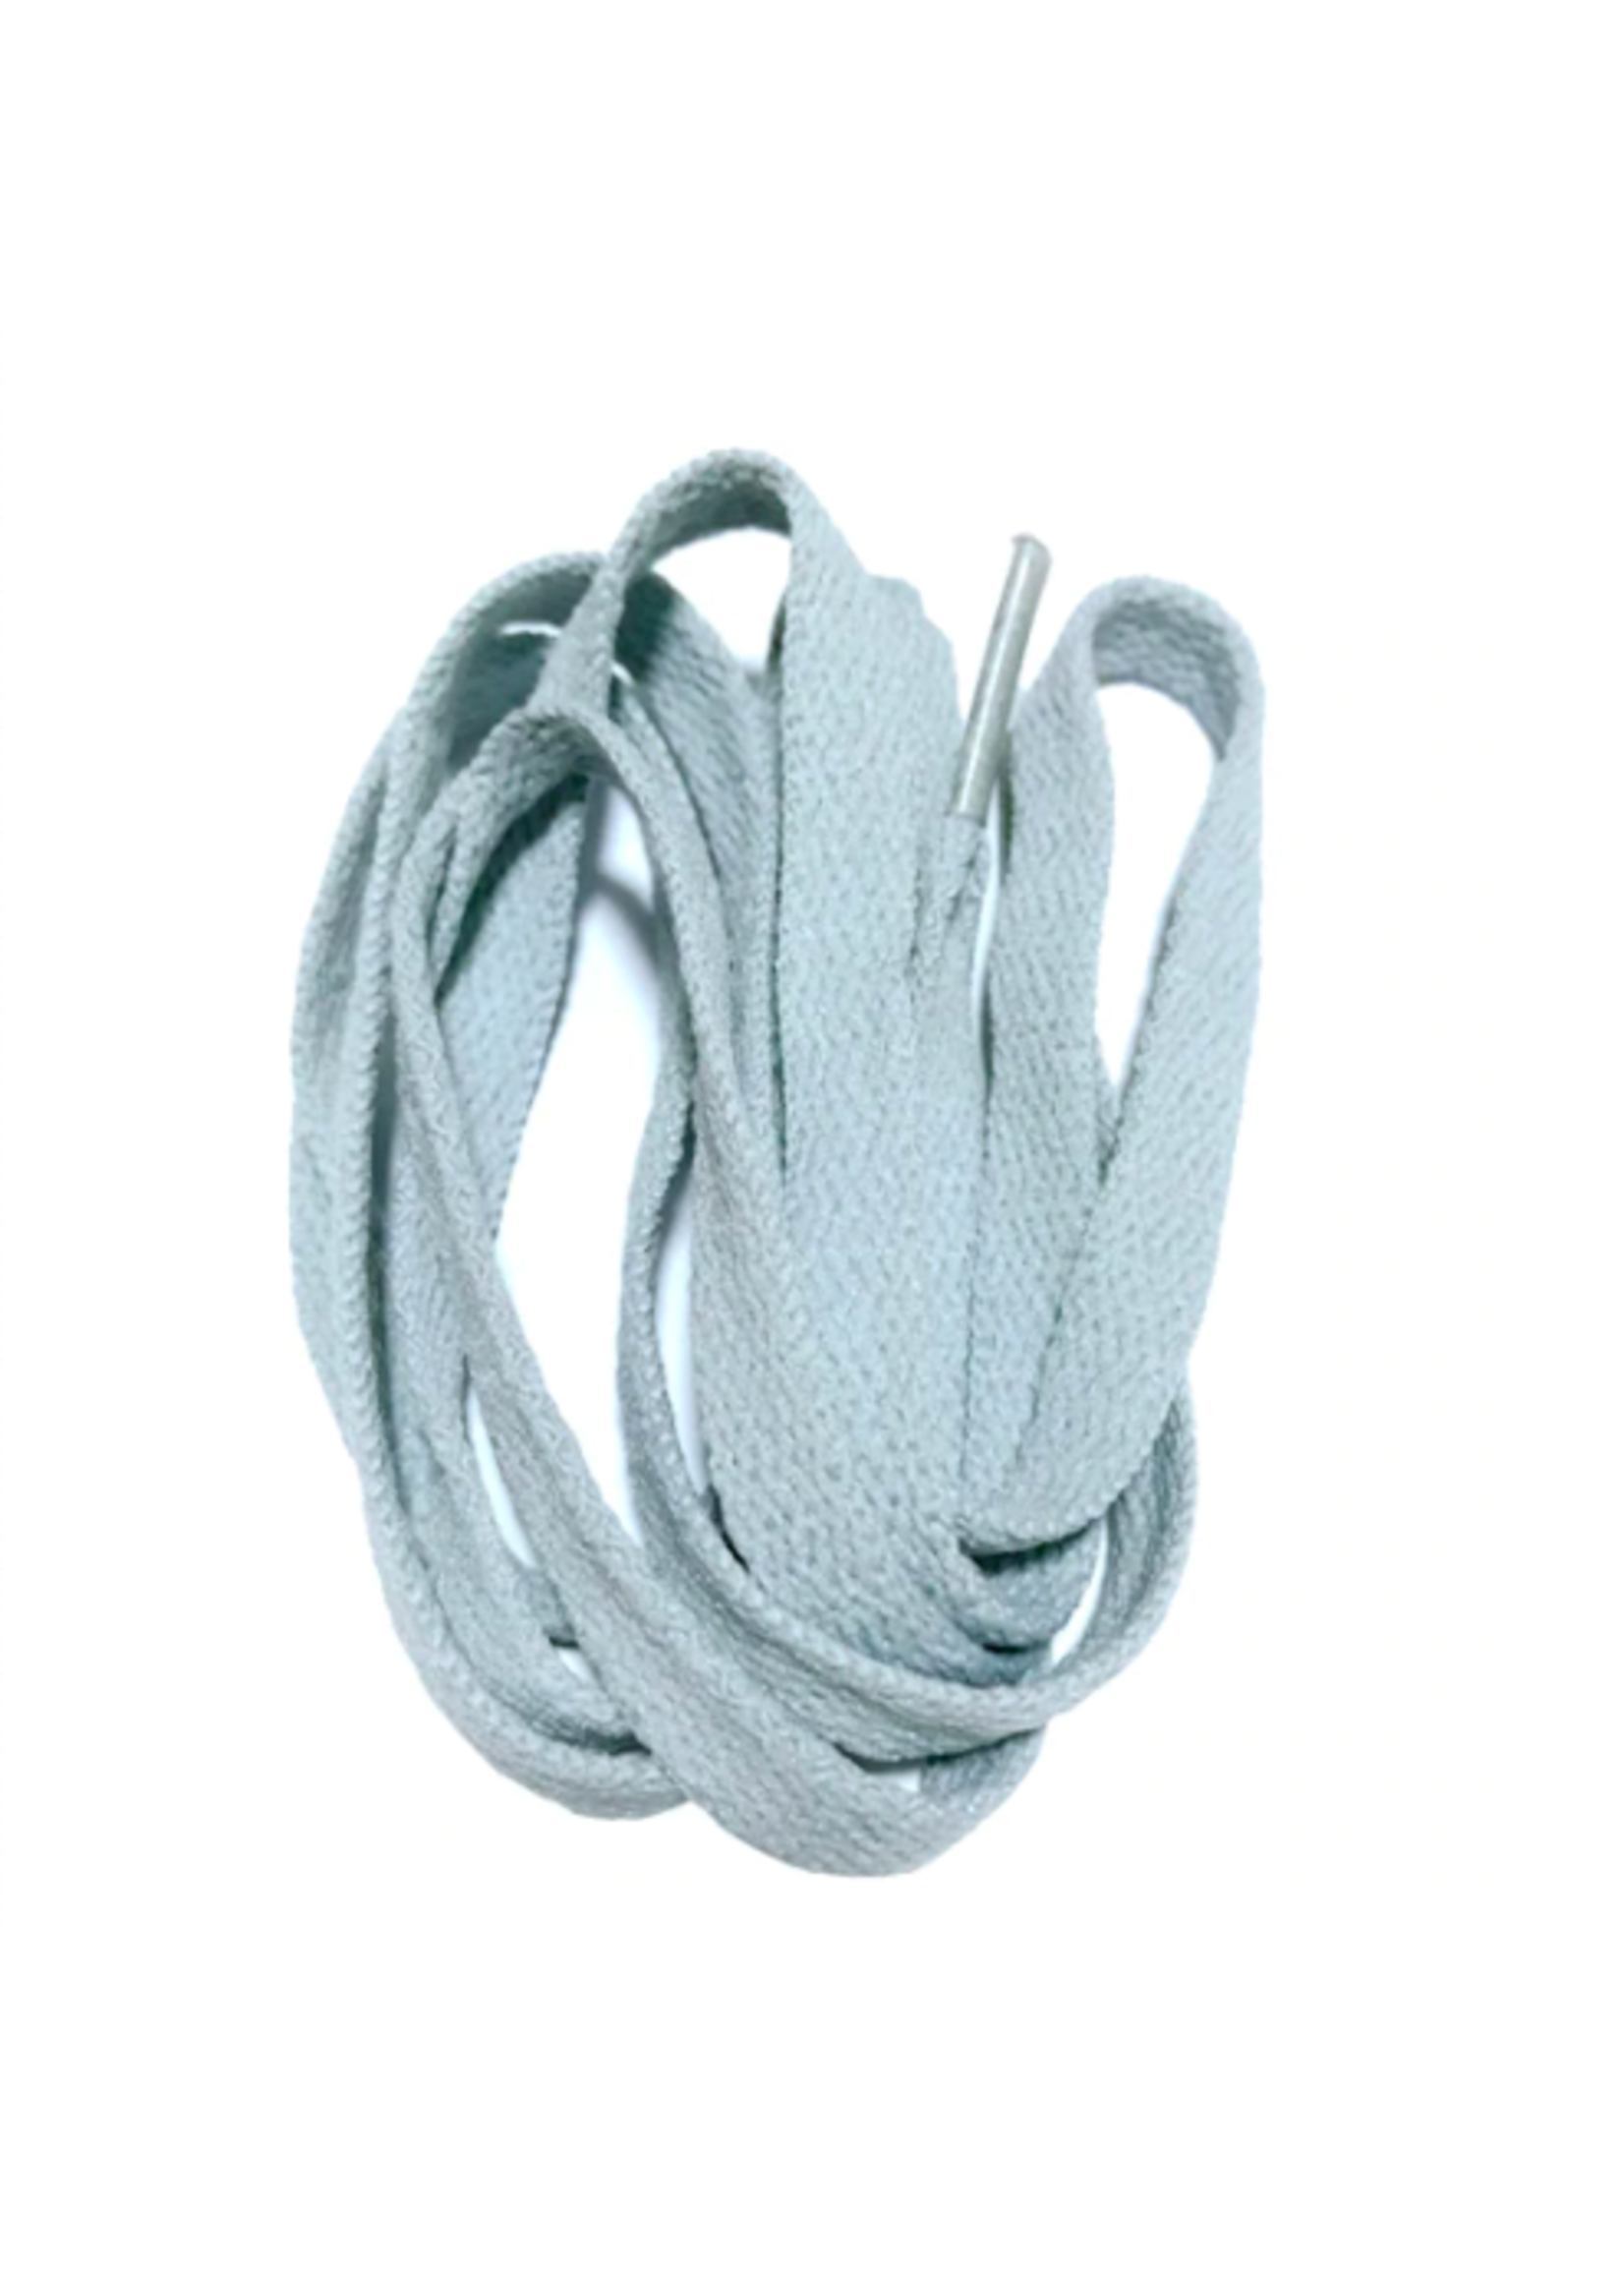 Shoelaces 31 inches